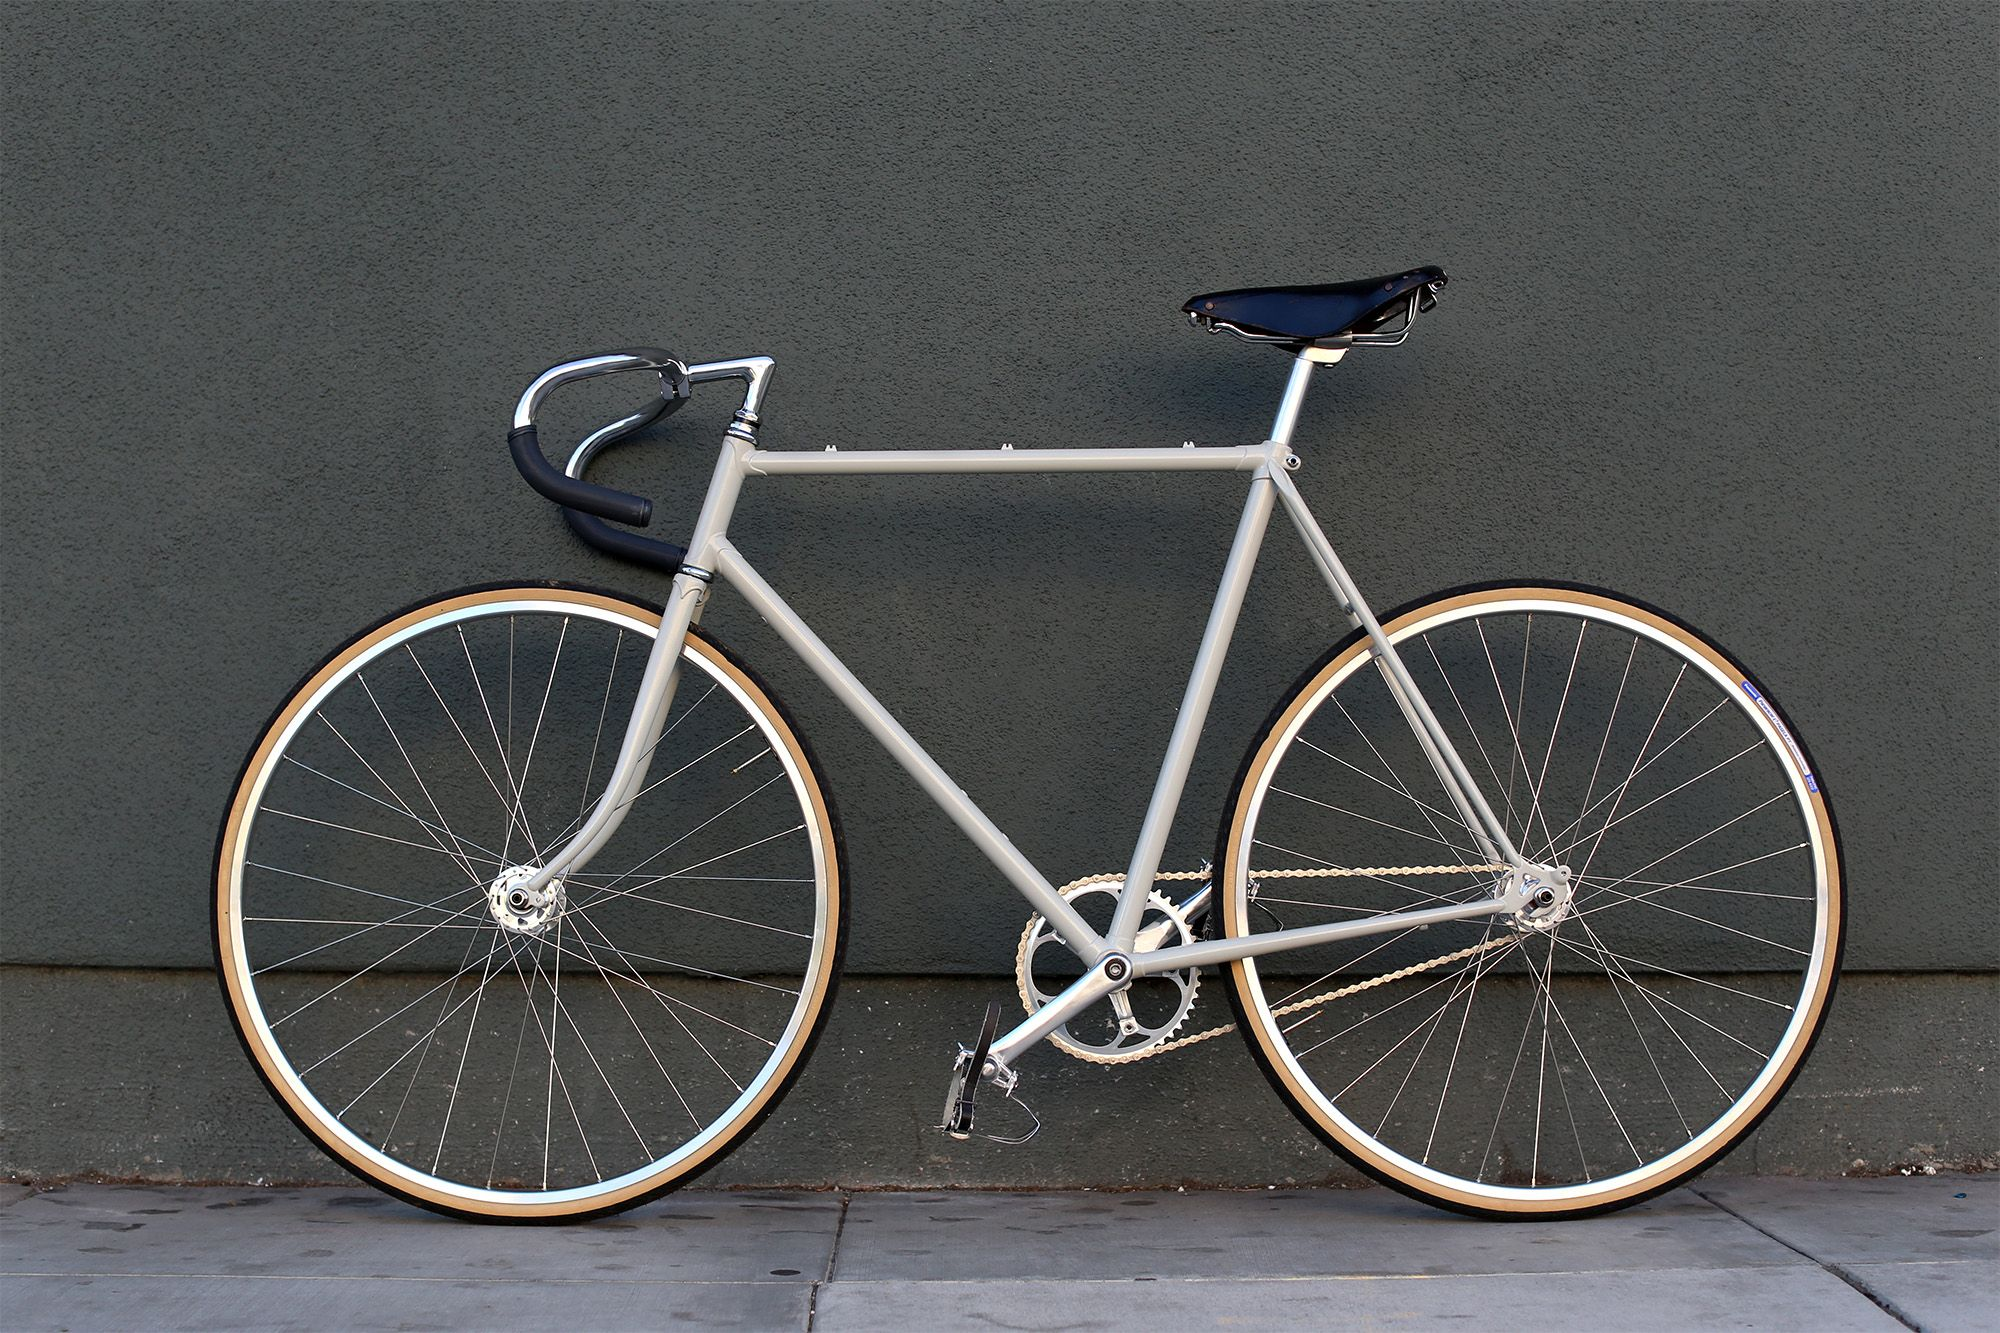 For Sale Inspired By Italian Track Bikes This Build Features A